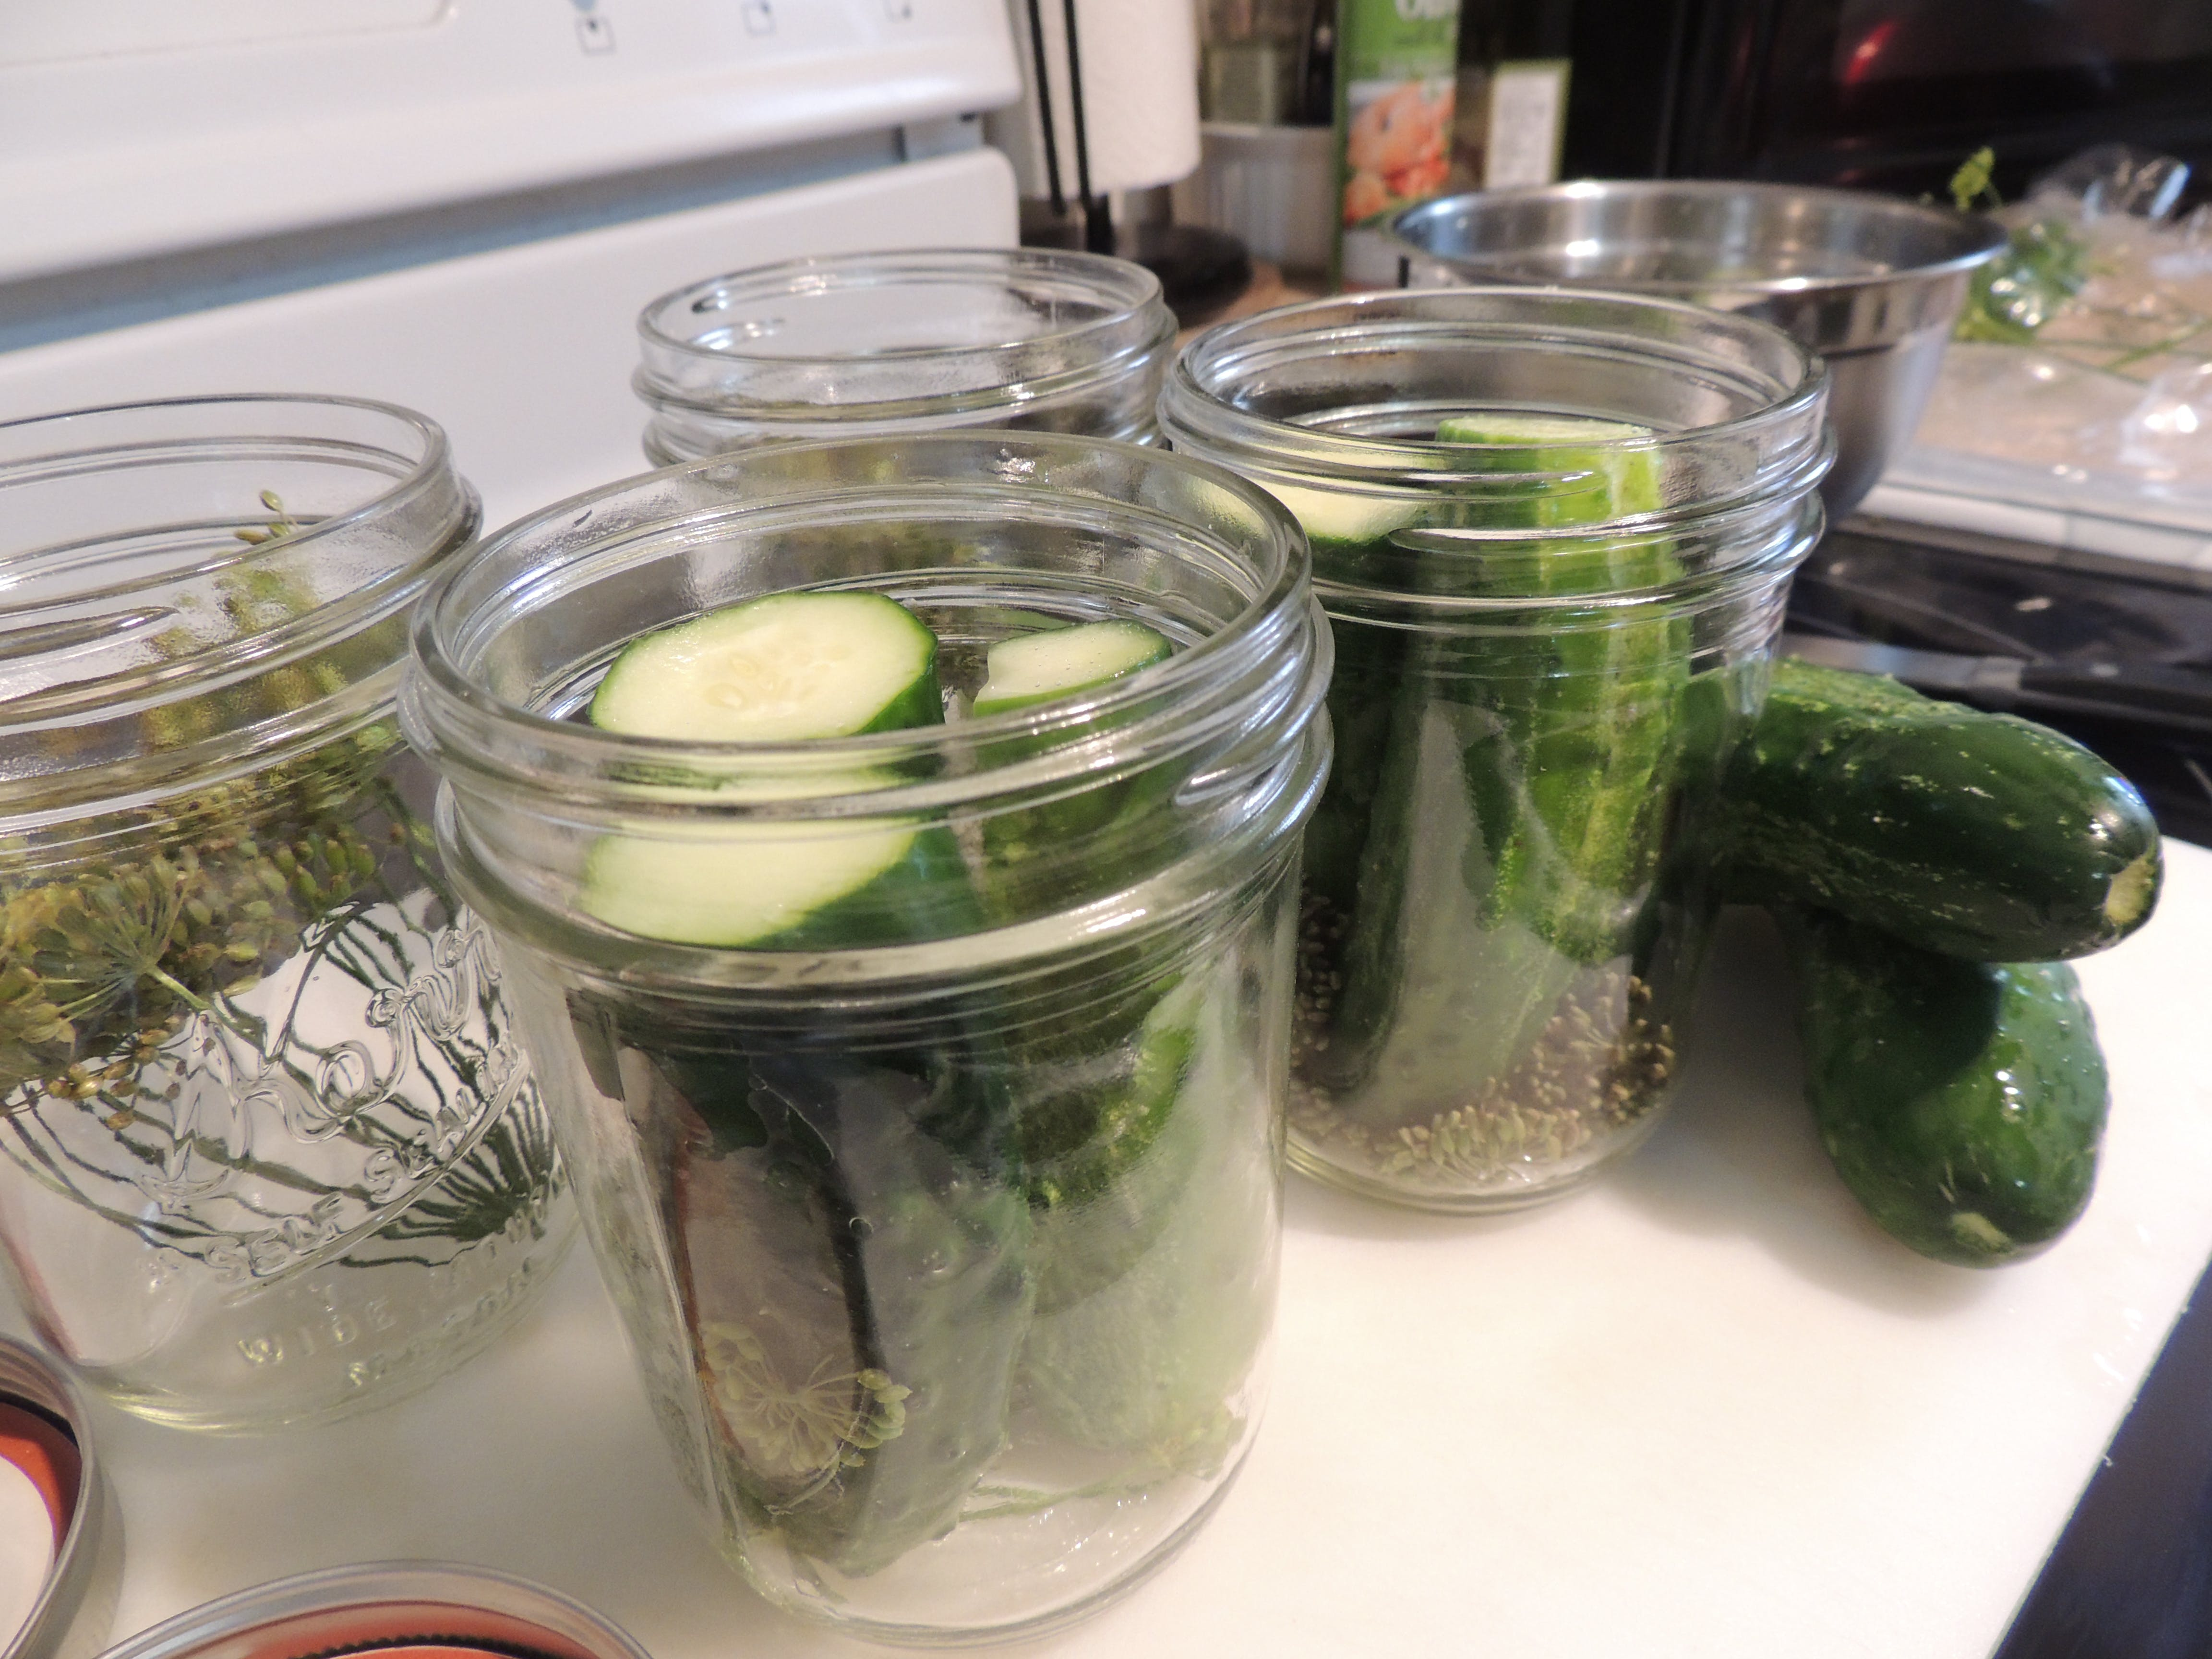 Free stock photo of cucumbers, dill, pickles, homemade pickles